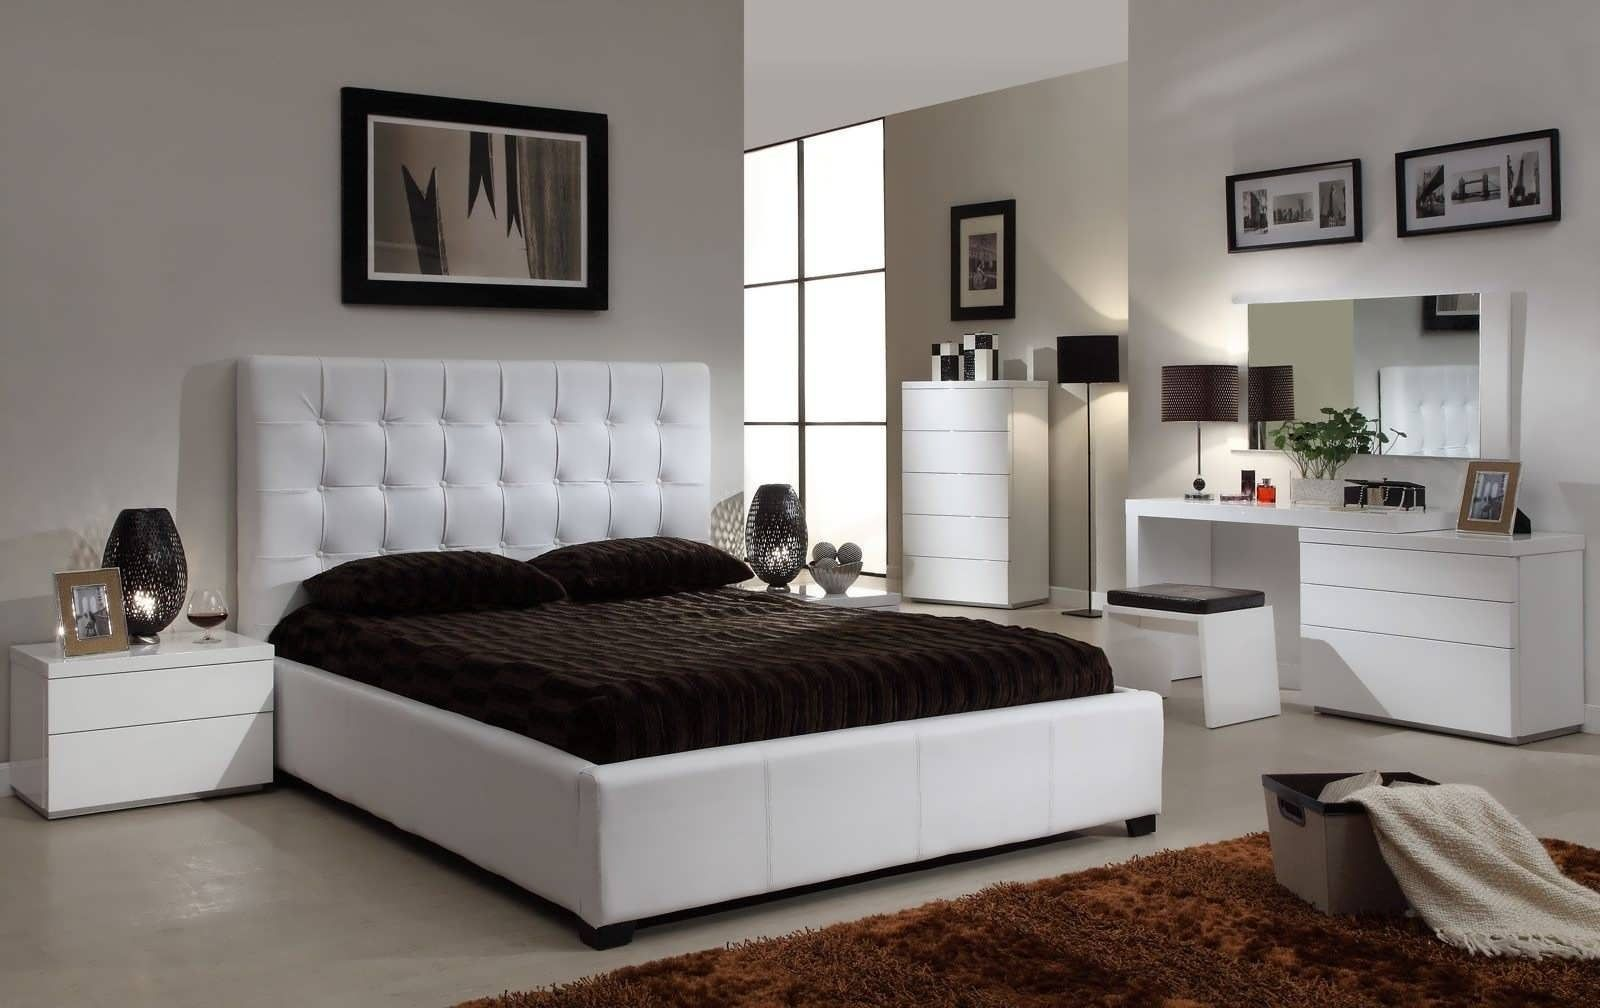 30 Awesome Photo Of Affordable Bedroom Furniture Affordable Bedroom Furniture Affordable Bedroom Furniture Affordable Bedroom Luxury White Bedroom Furniture